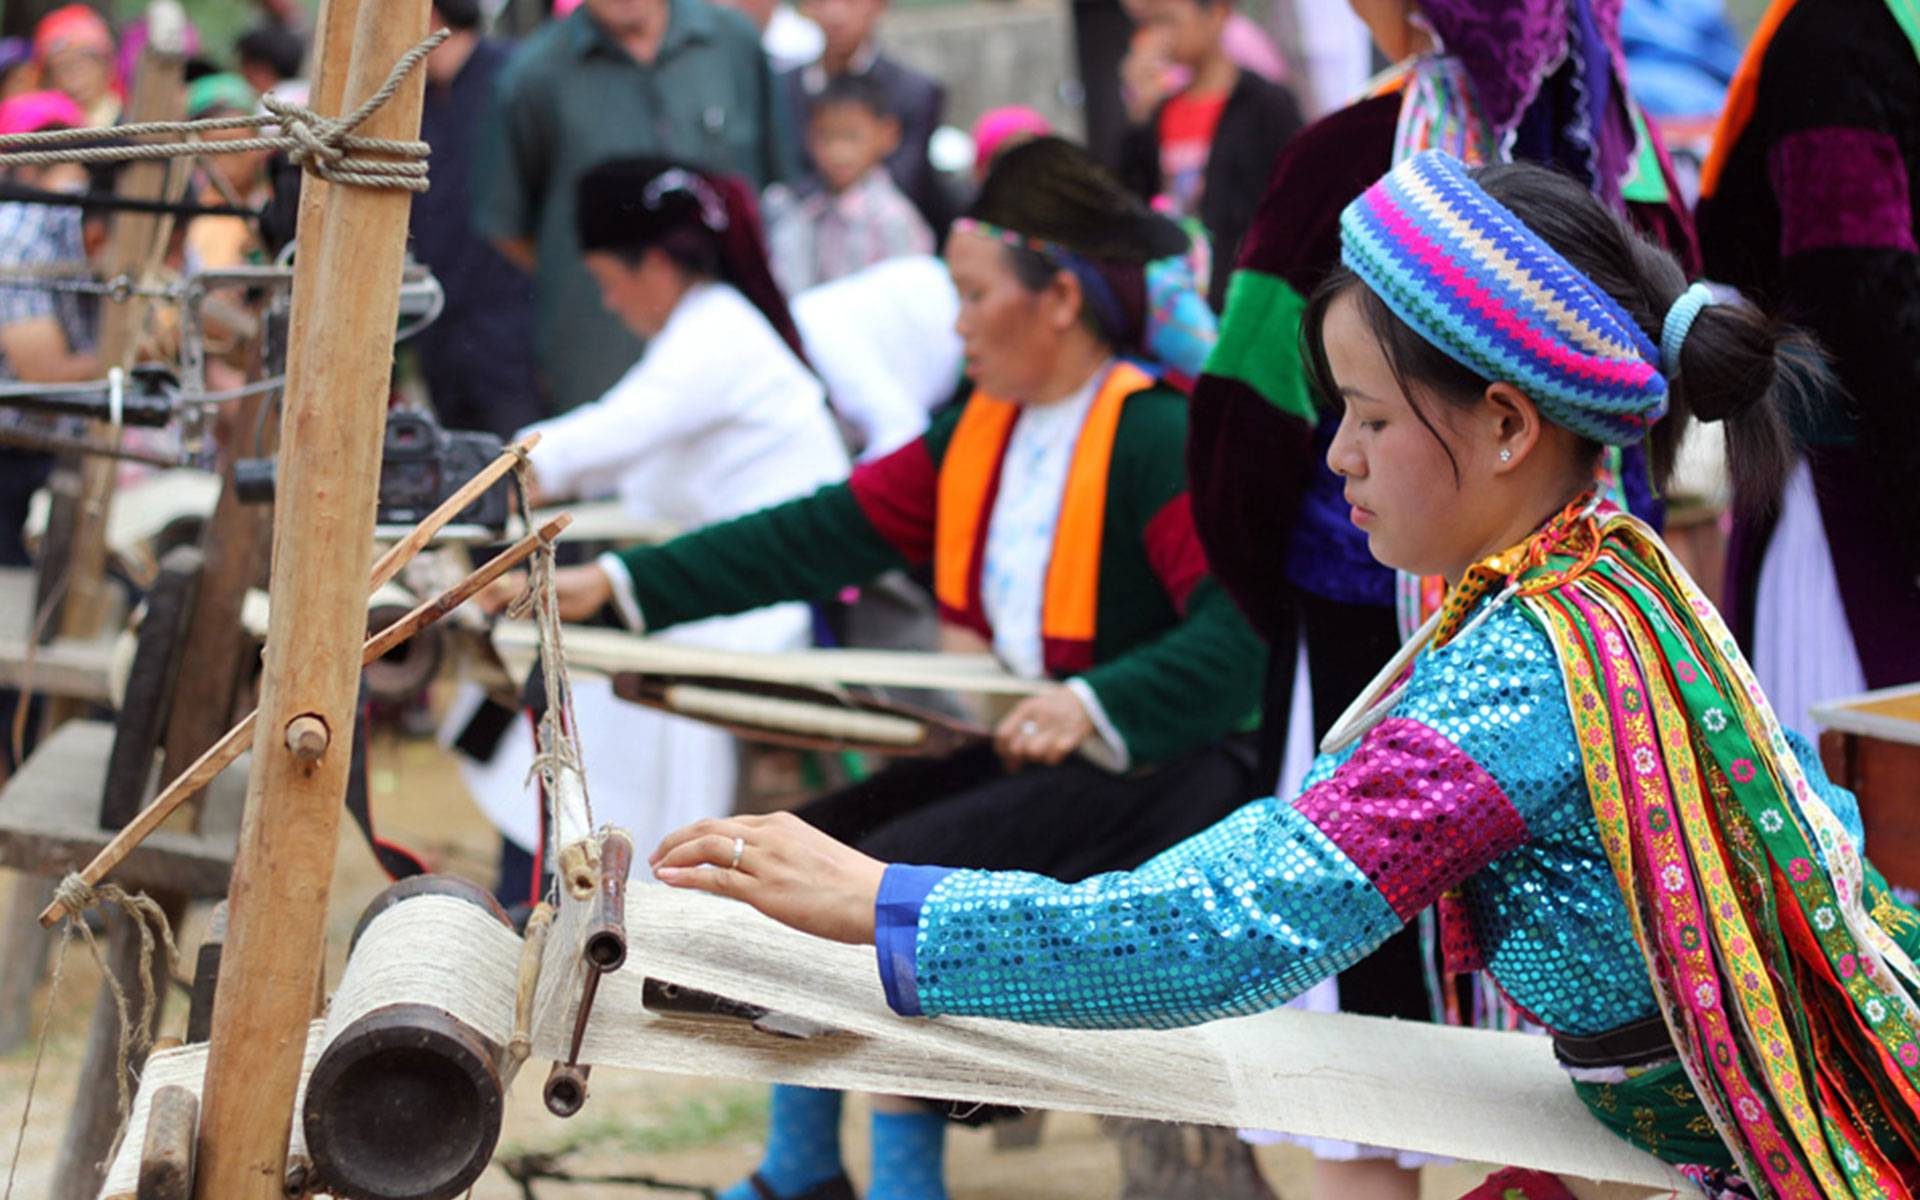 Mong girls participate in the linen weaving competition in Khau Vai Love Market